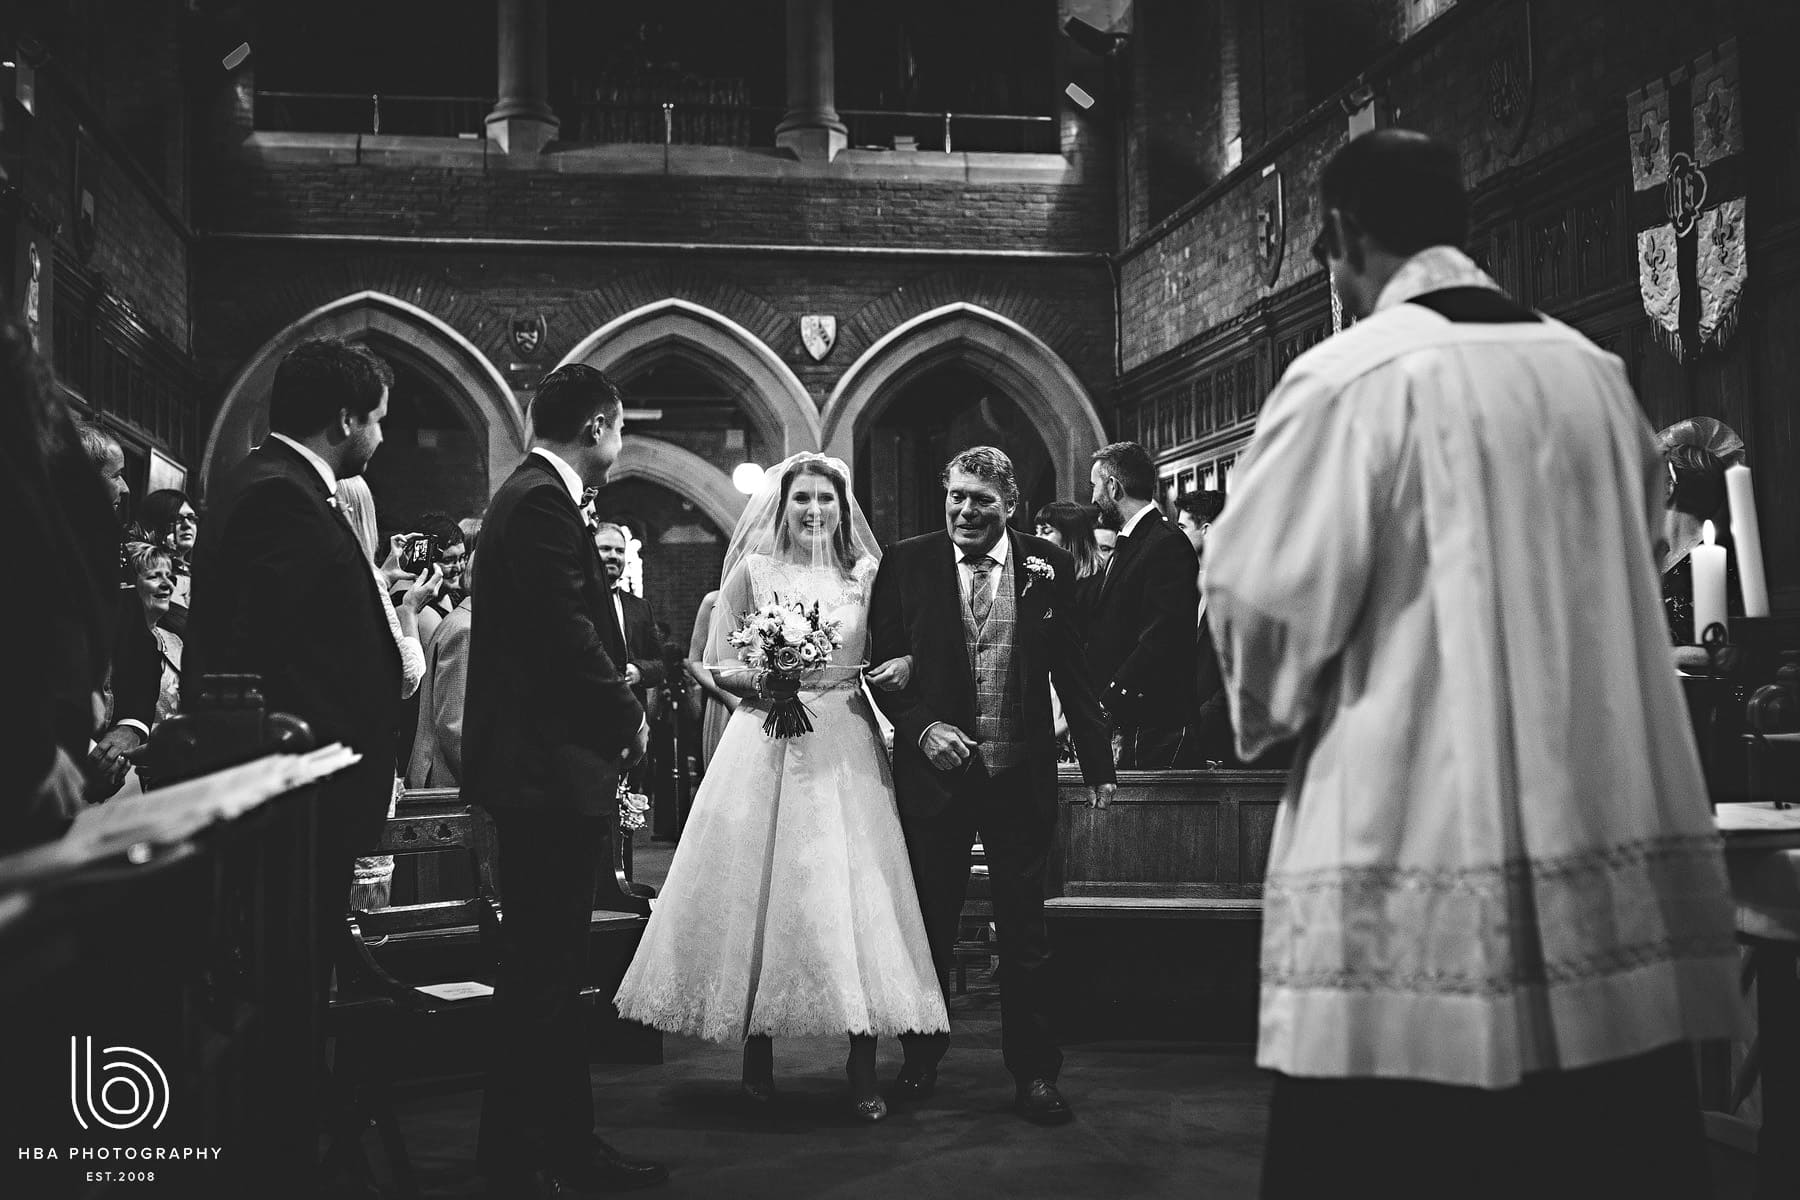 The bride & groom in the chapel at Abbots Bromley school